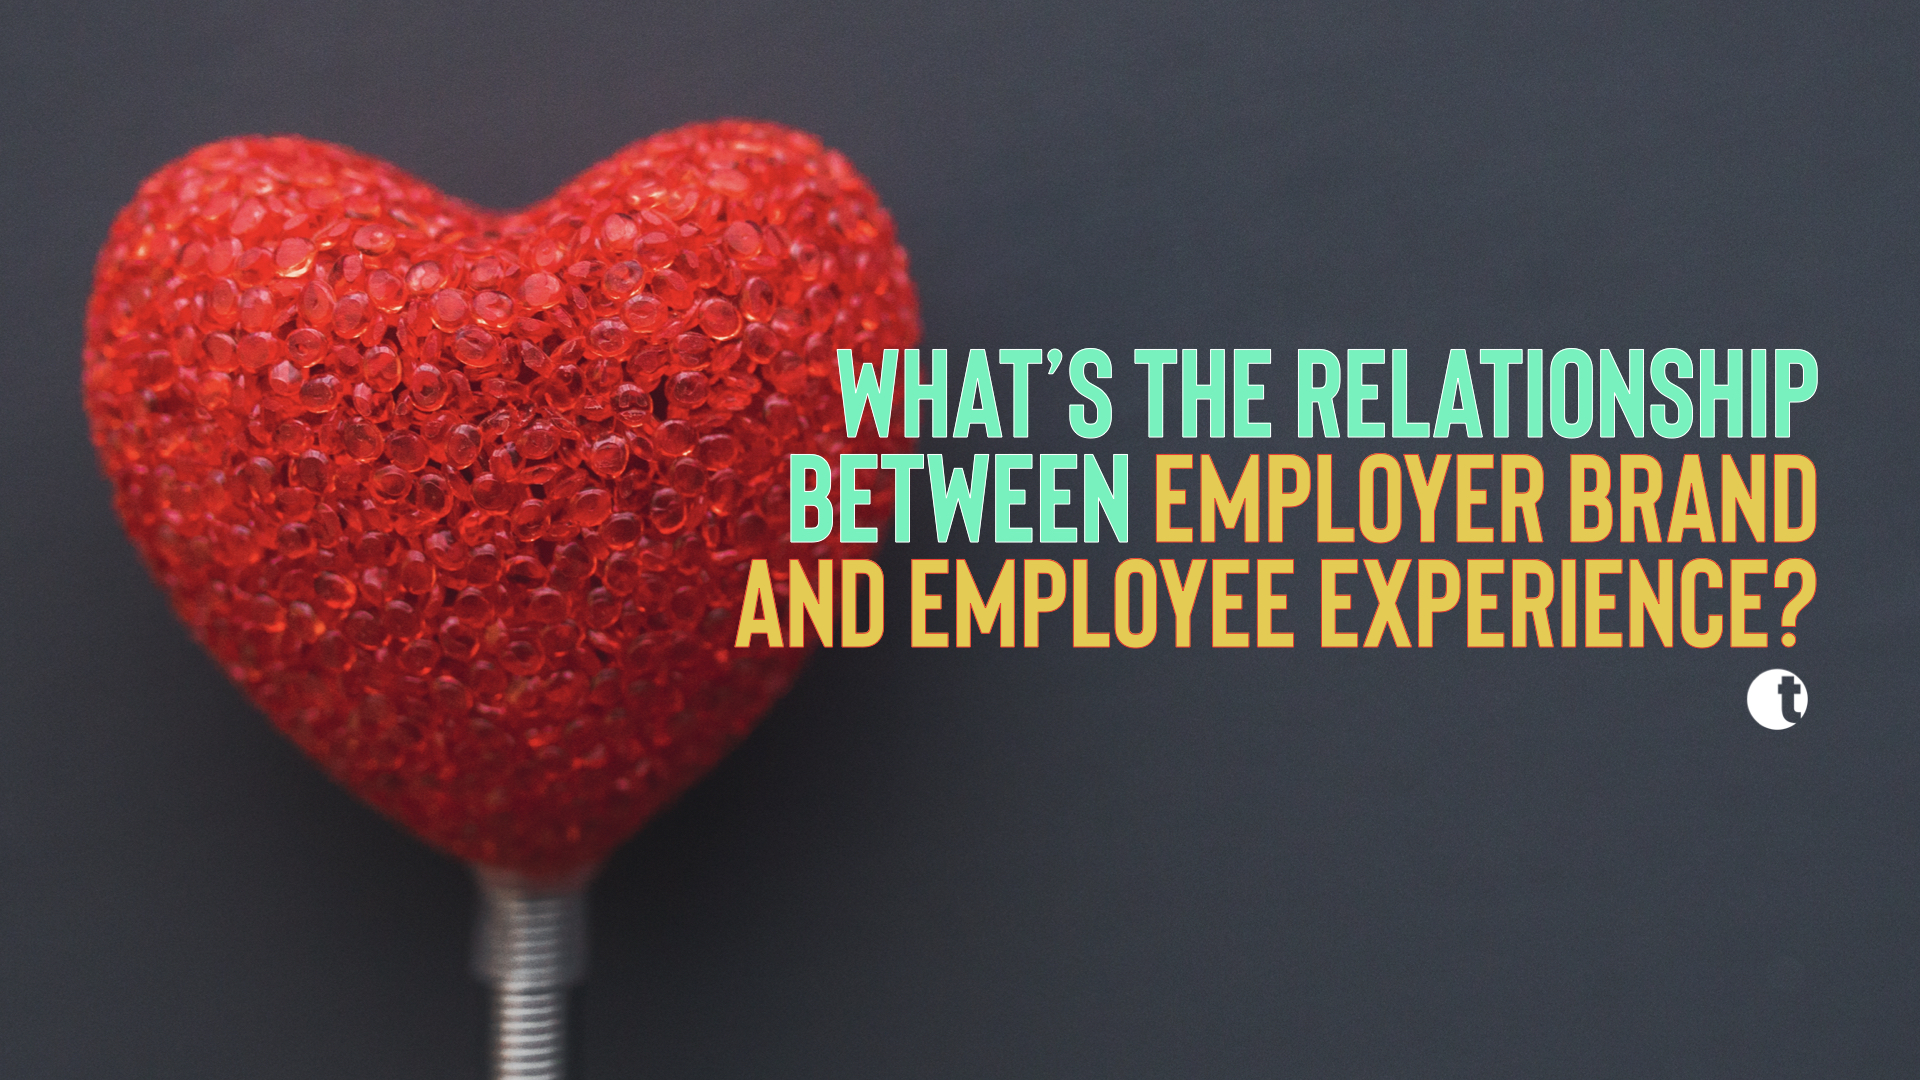 Connecting employer brand to employee experience